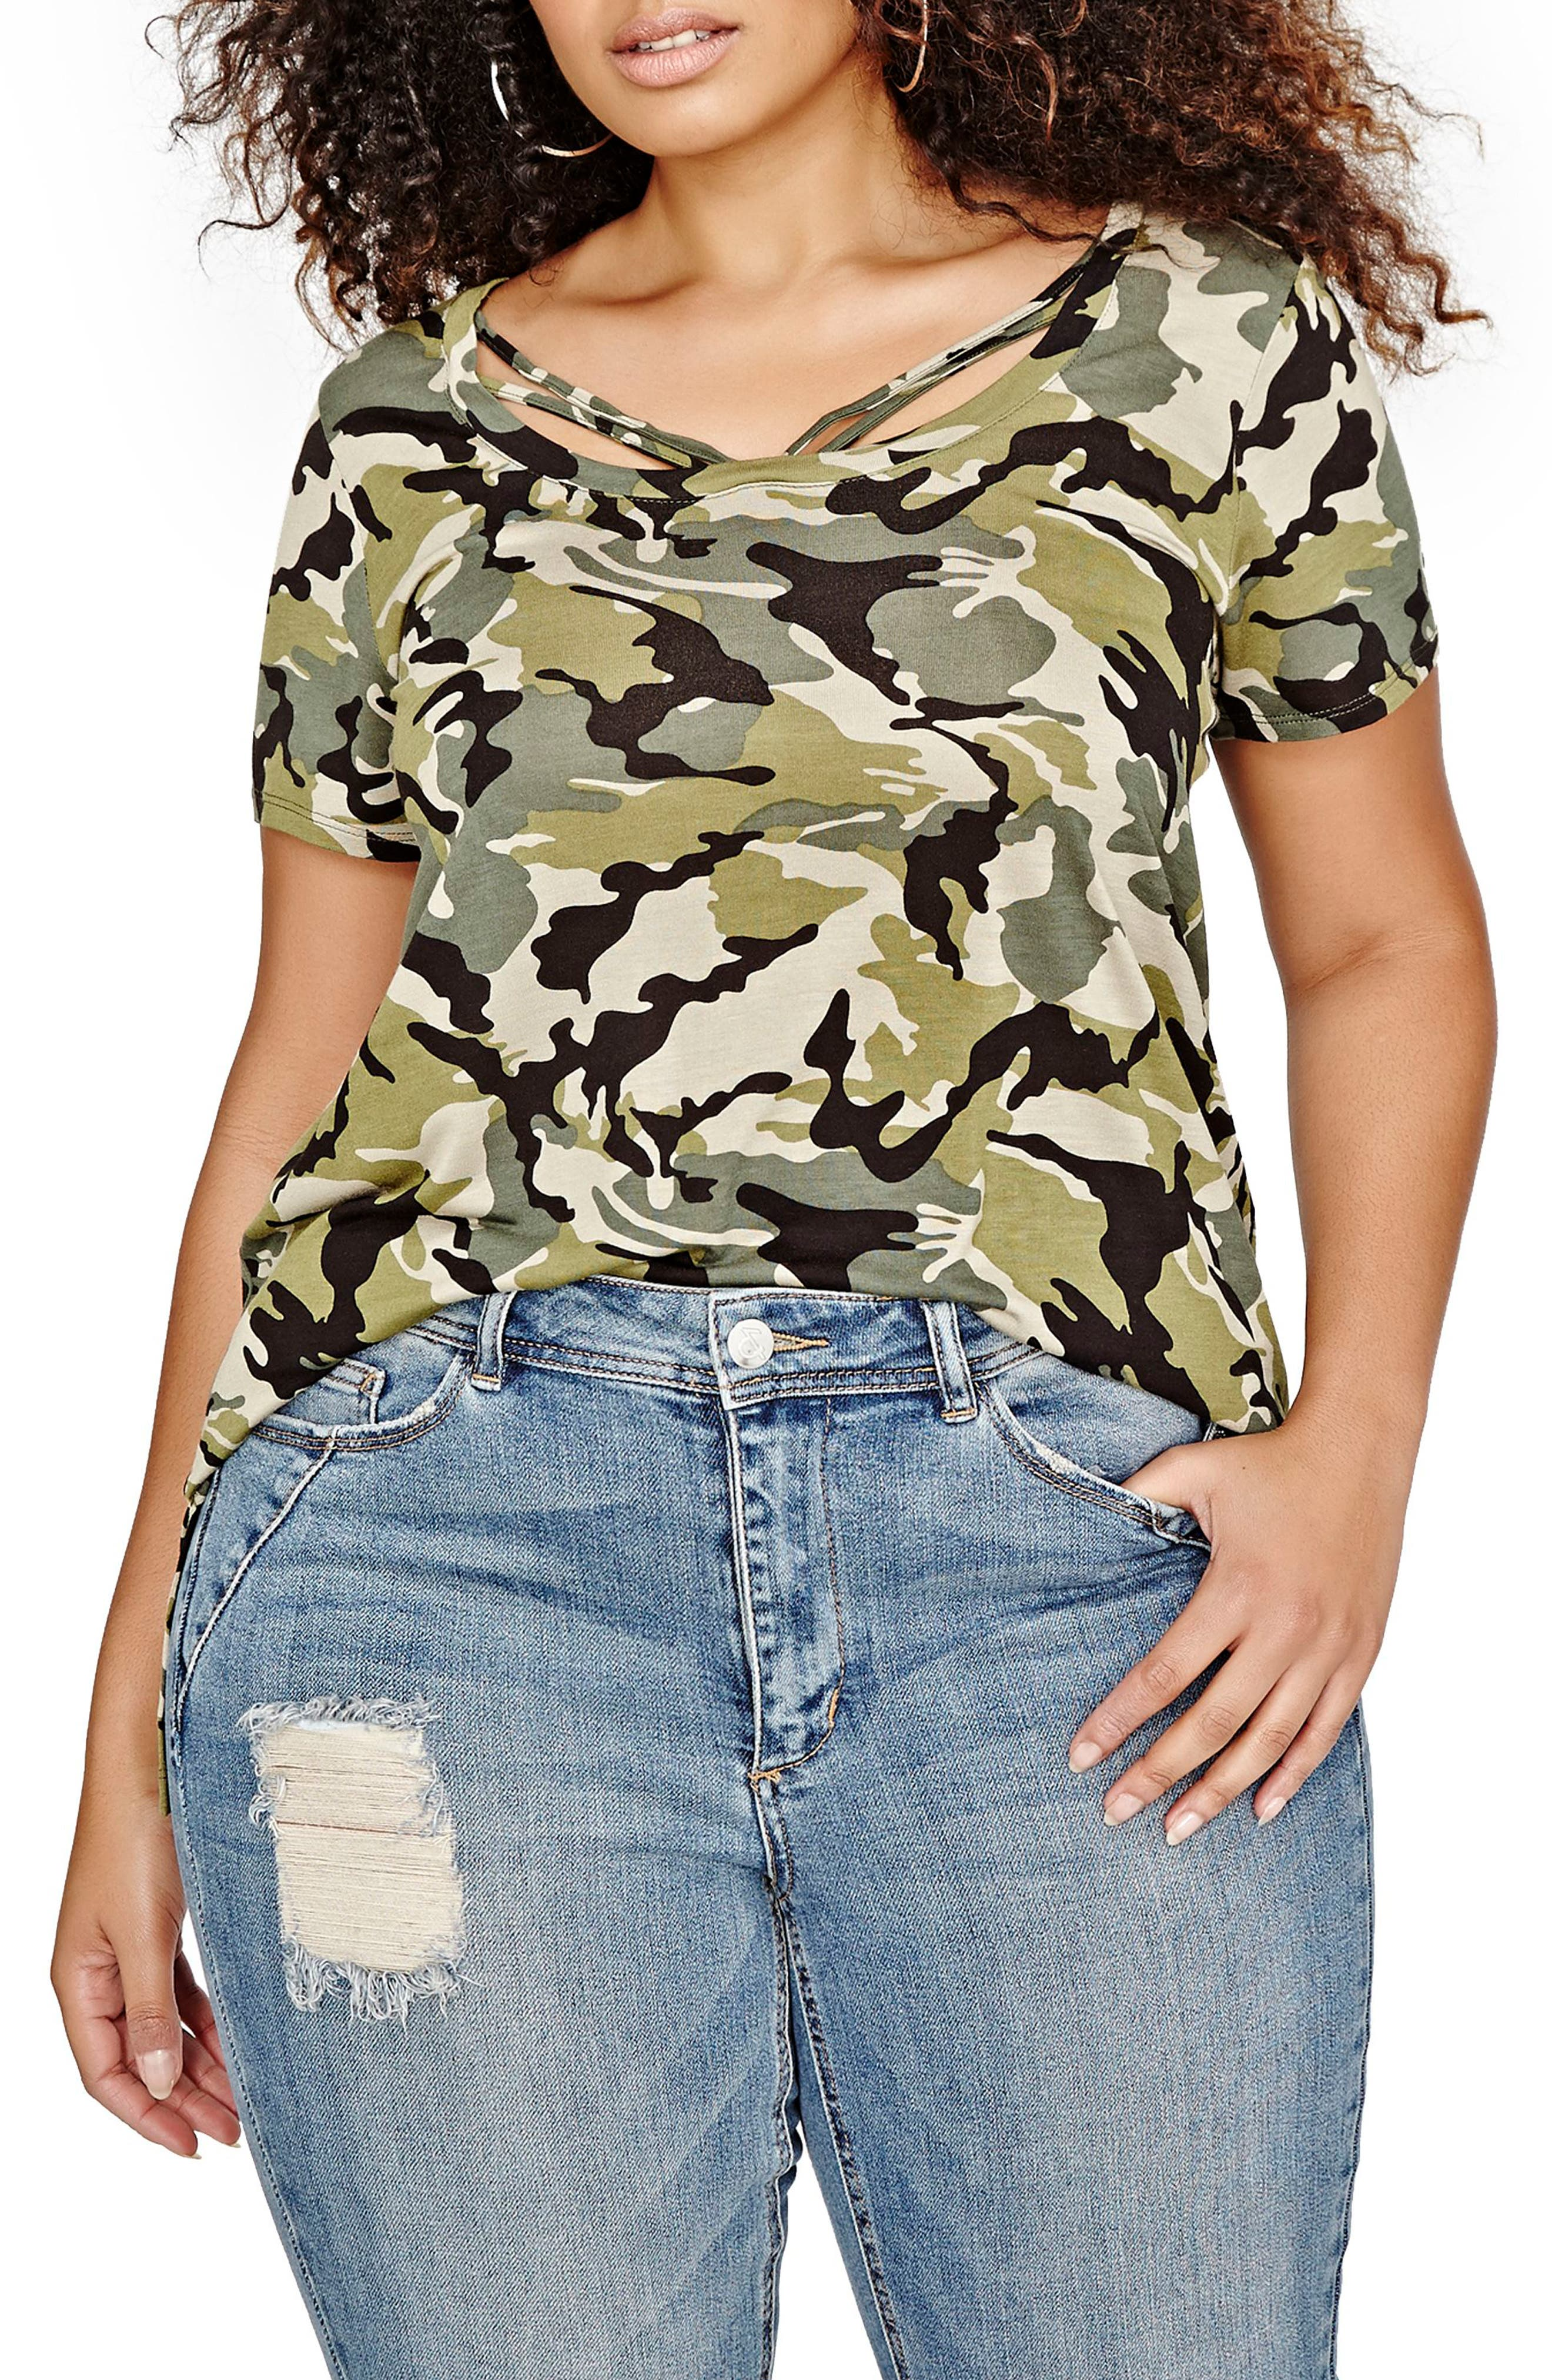 ADDITION ELLE LOVE AND LEGEND Camo Strap Detail Tee (Plus Size)